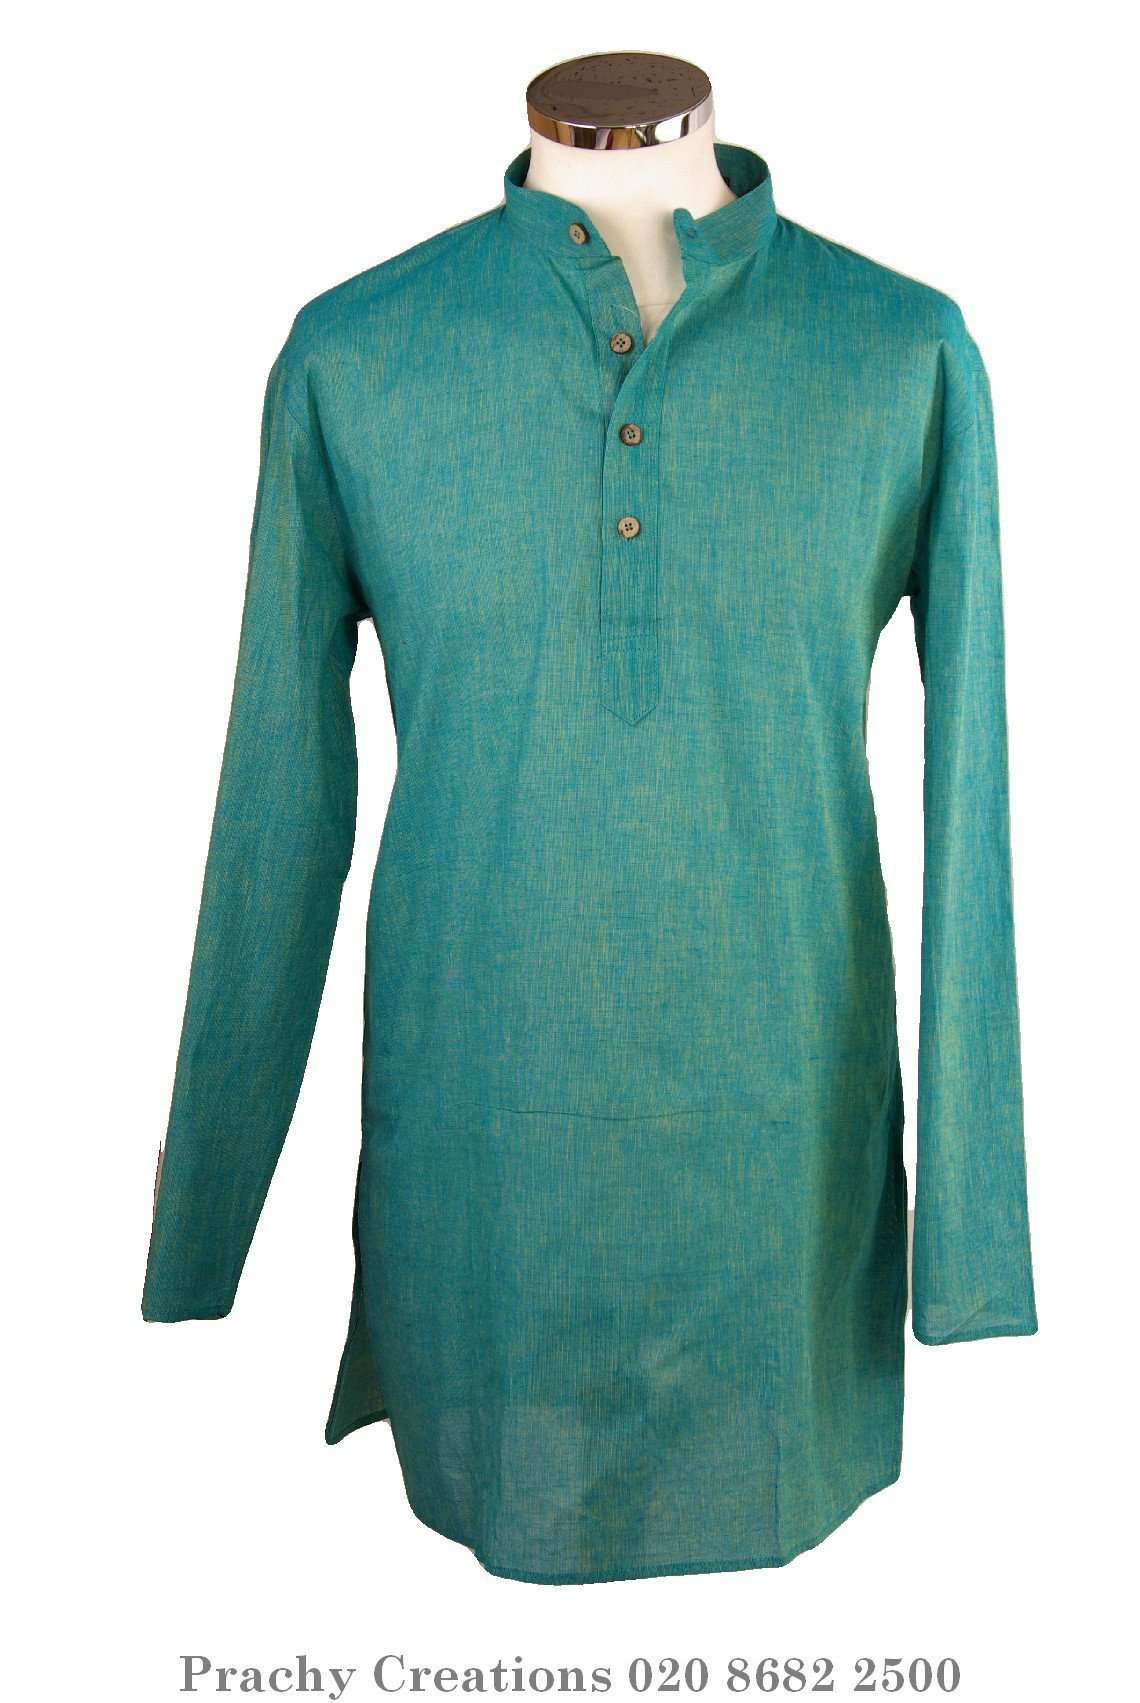 Turquoise Kurta top - Indian shirt - Ideal on a pair of jeans - Azad P 0316 - Prachy Creations